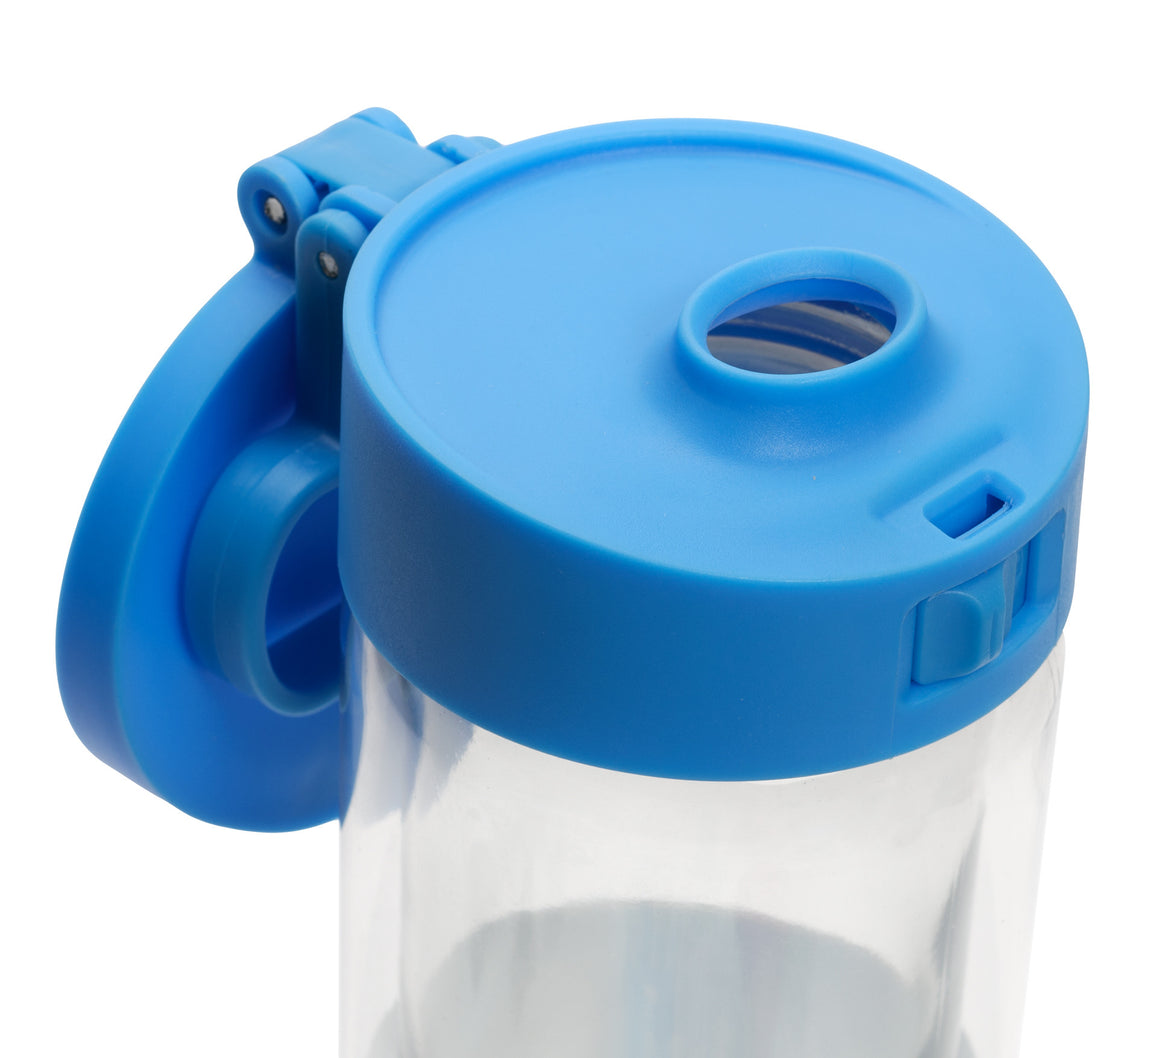 Glasstic Water Bottle Replacement Lid Cap Blue